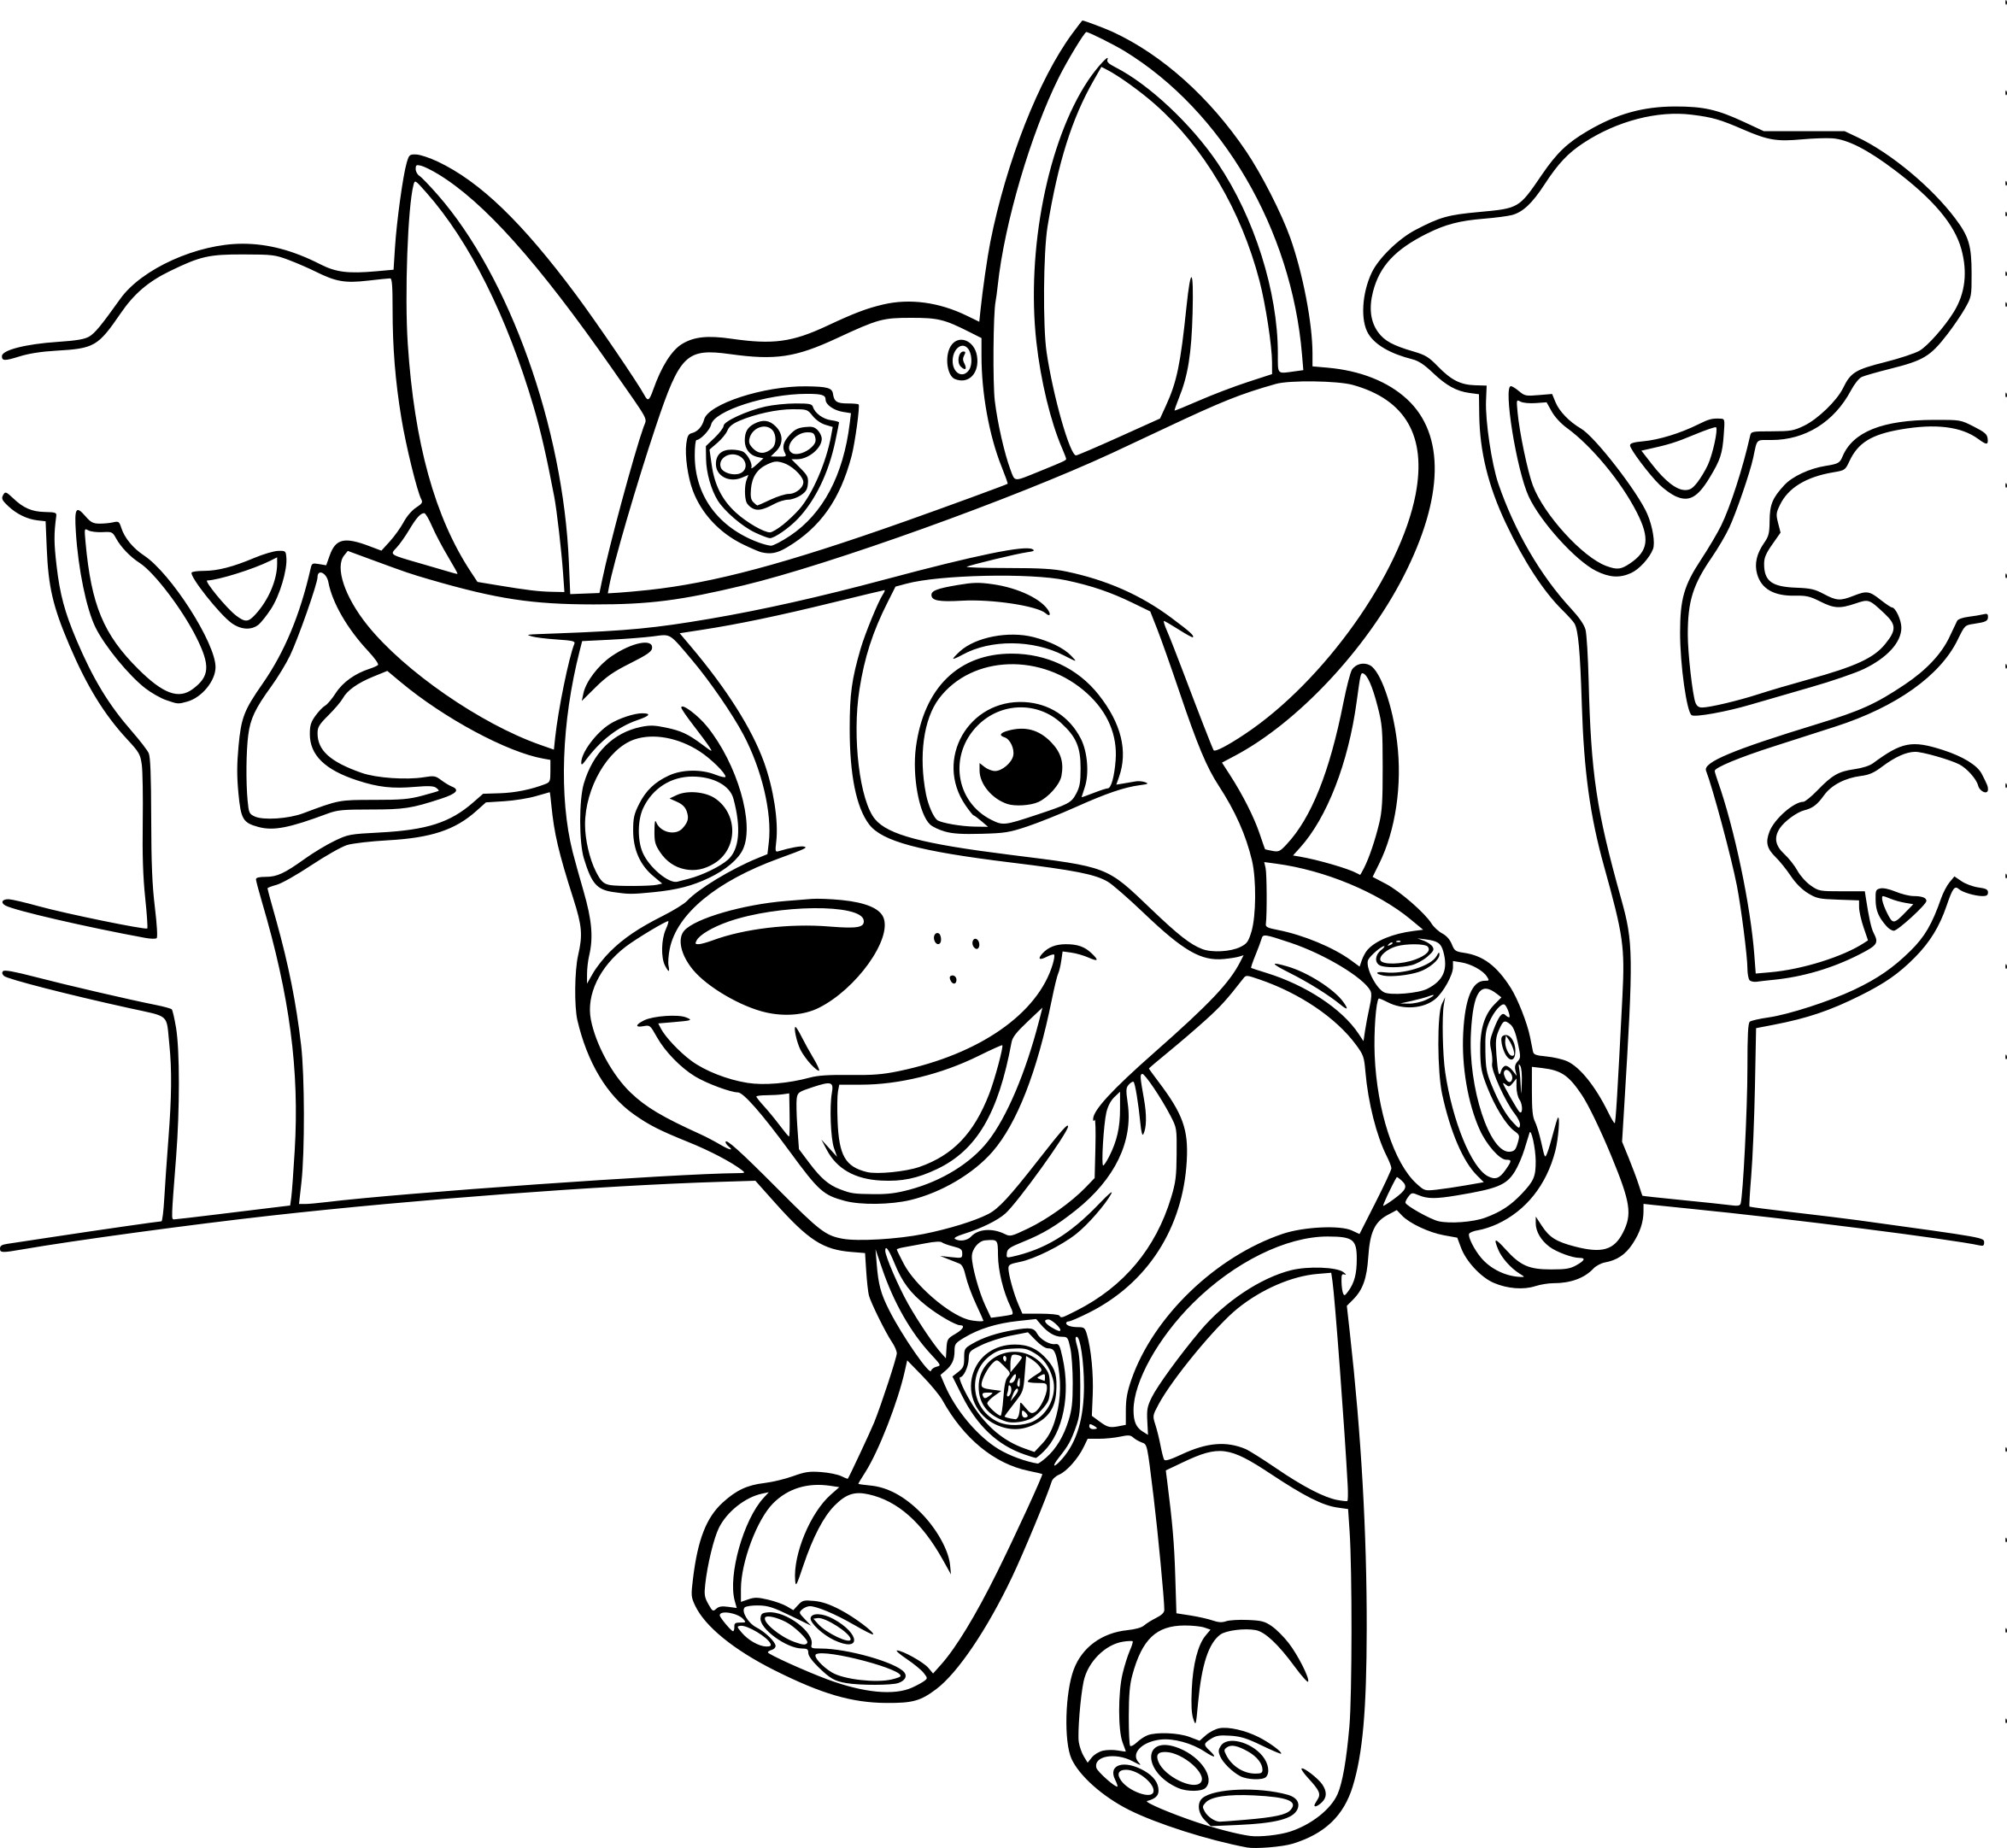 paw patrol coloring pages paw patrol 17 coloring pages cartoons coloring pages patrol pages paw coloring